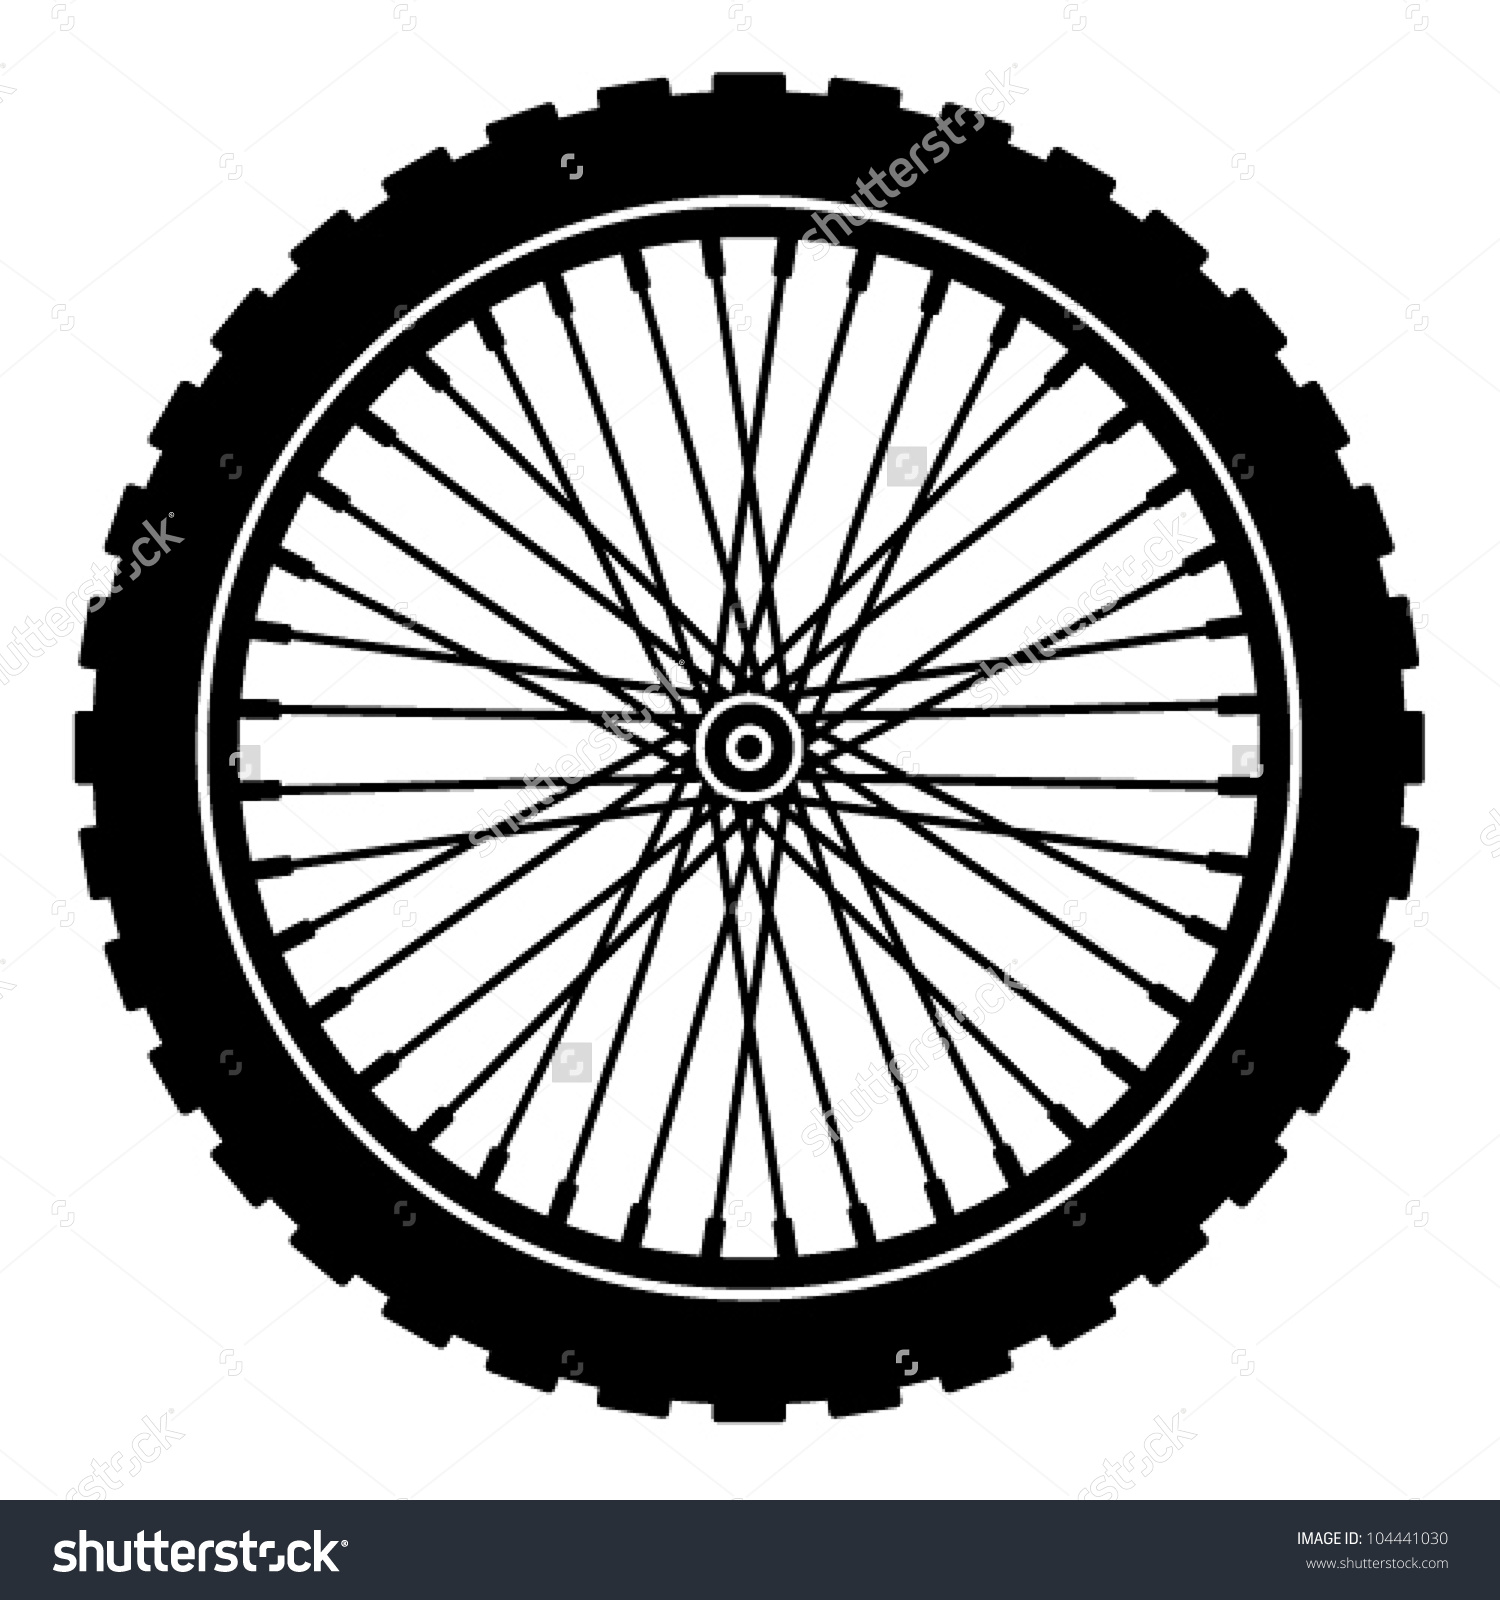 Bicycle Wheels Clipartbdpd9.